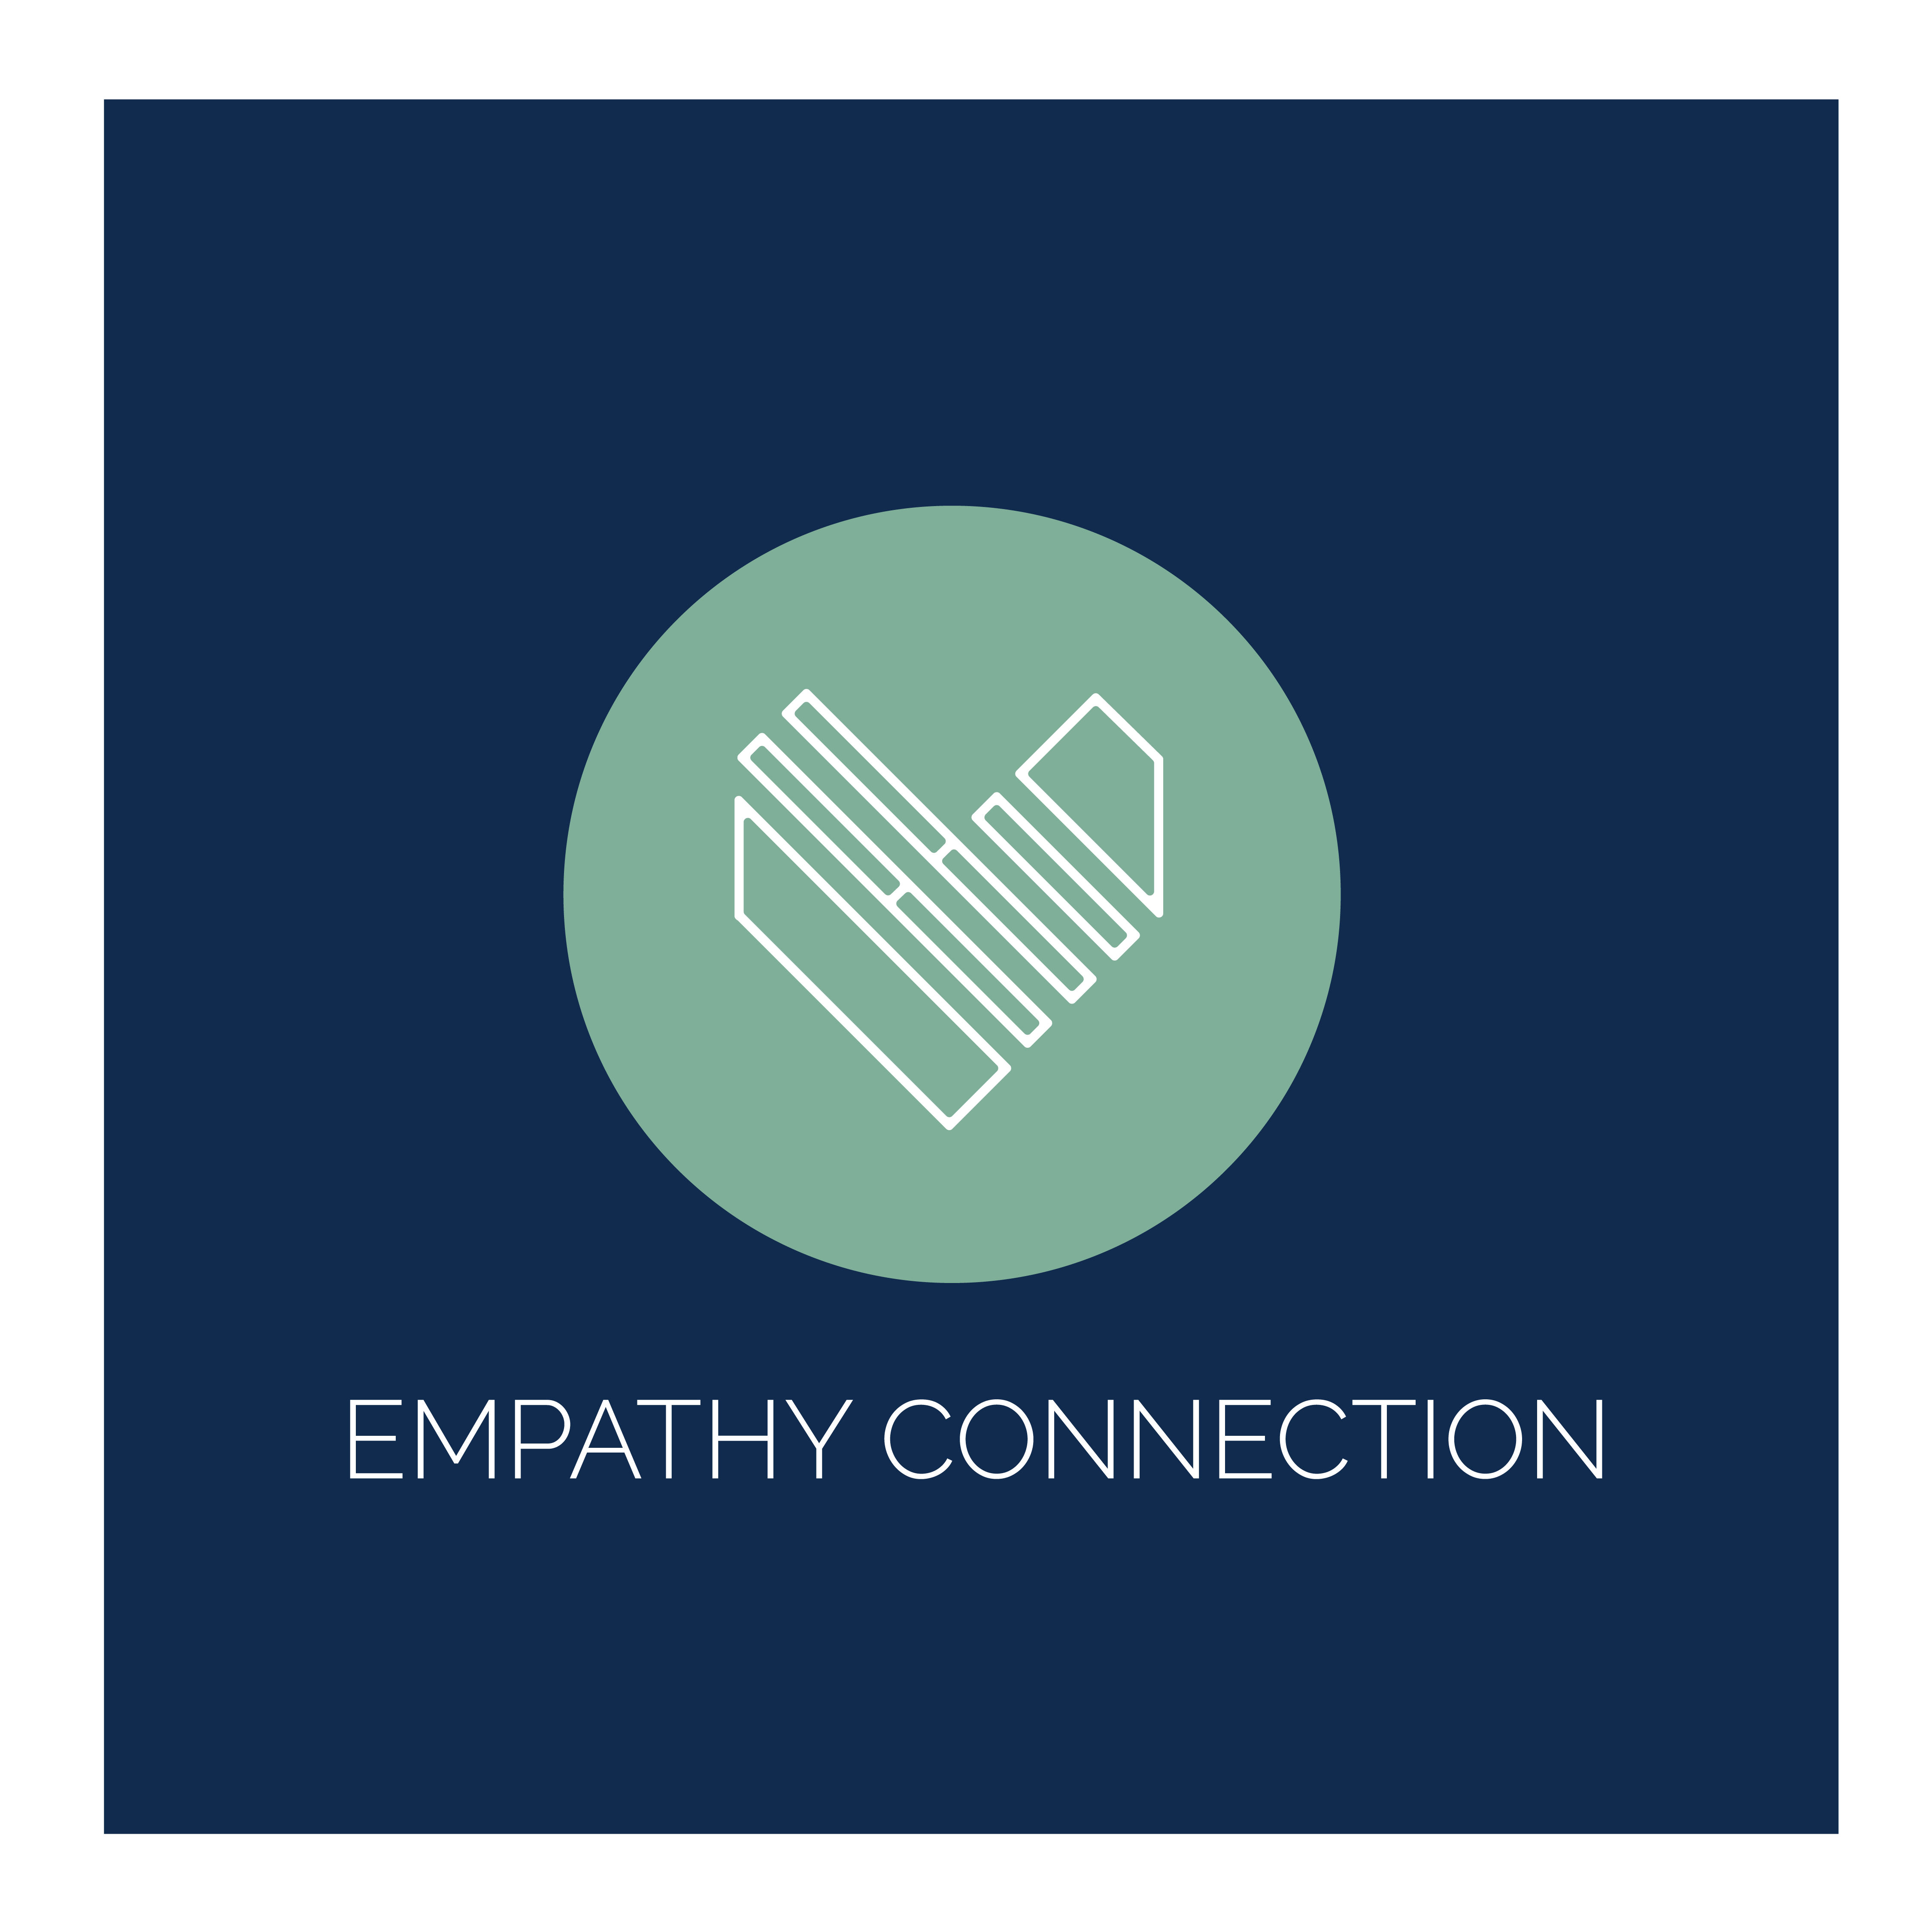 Empathy Connection logo